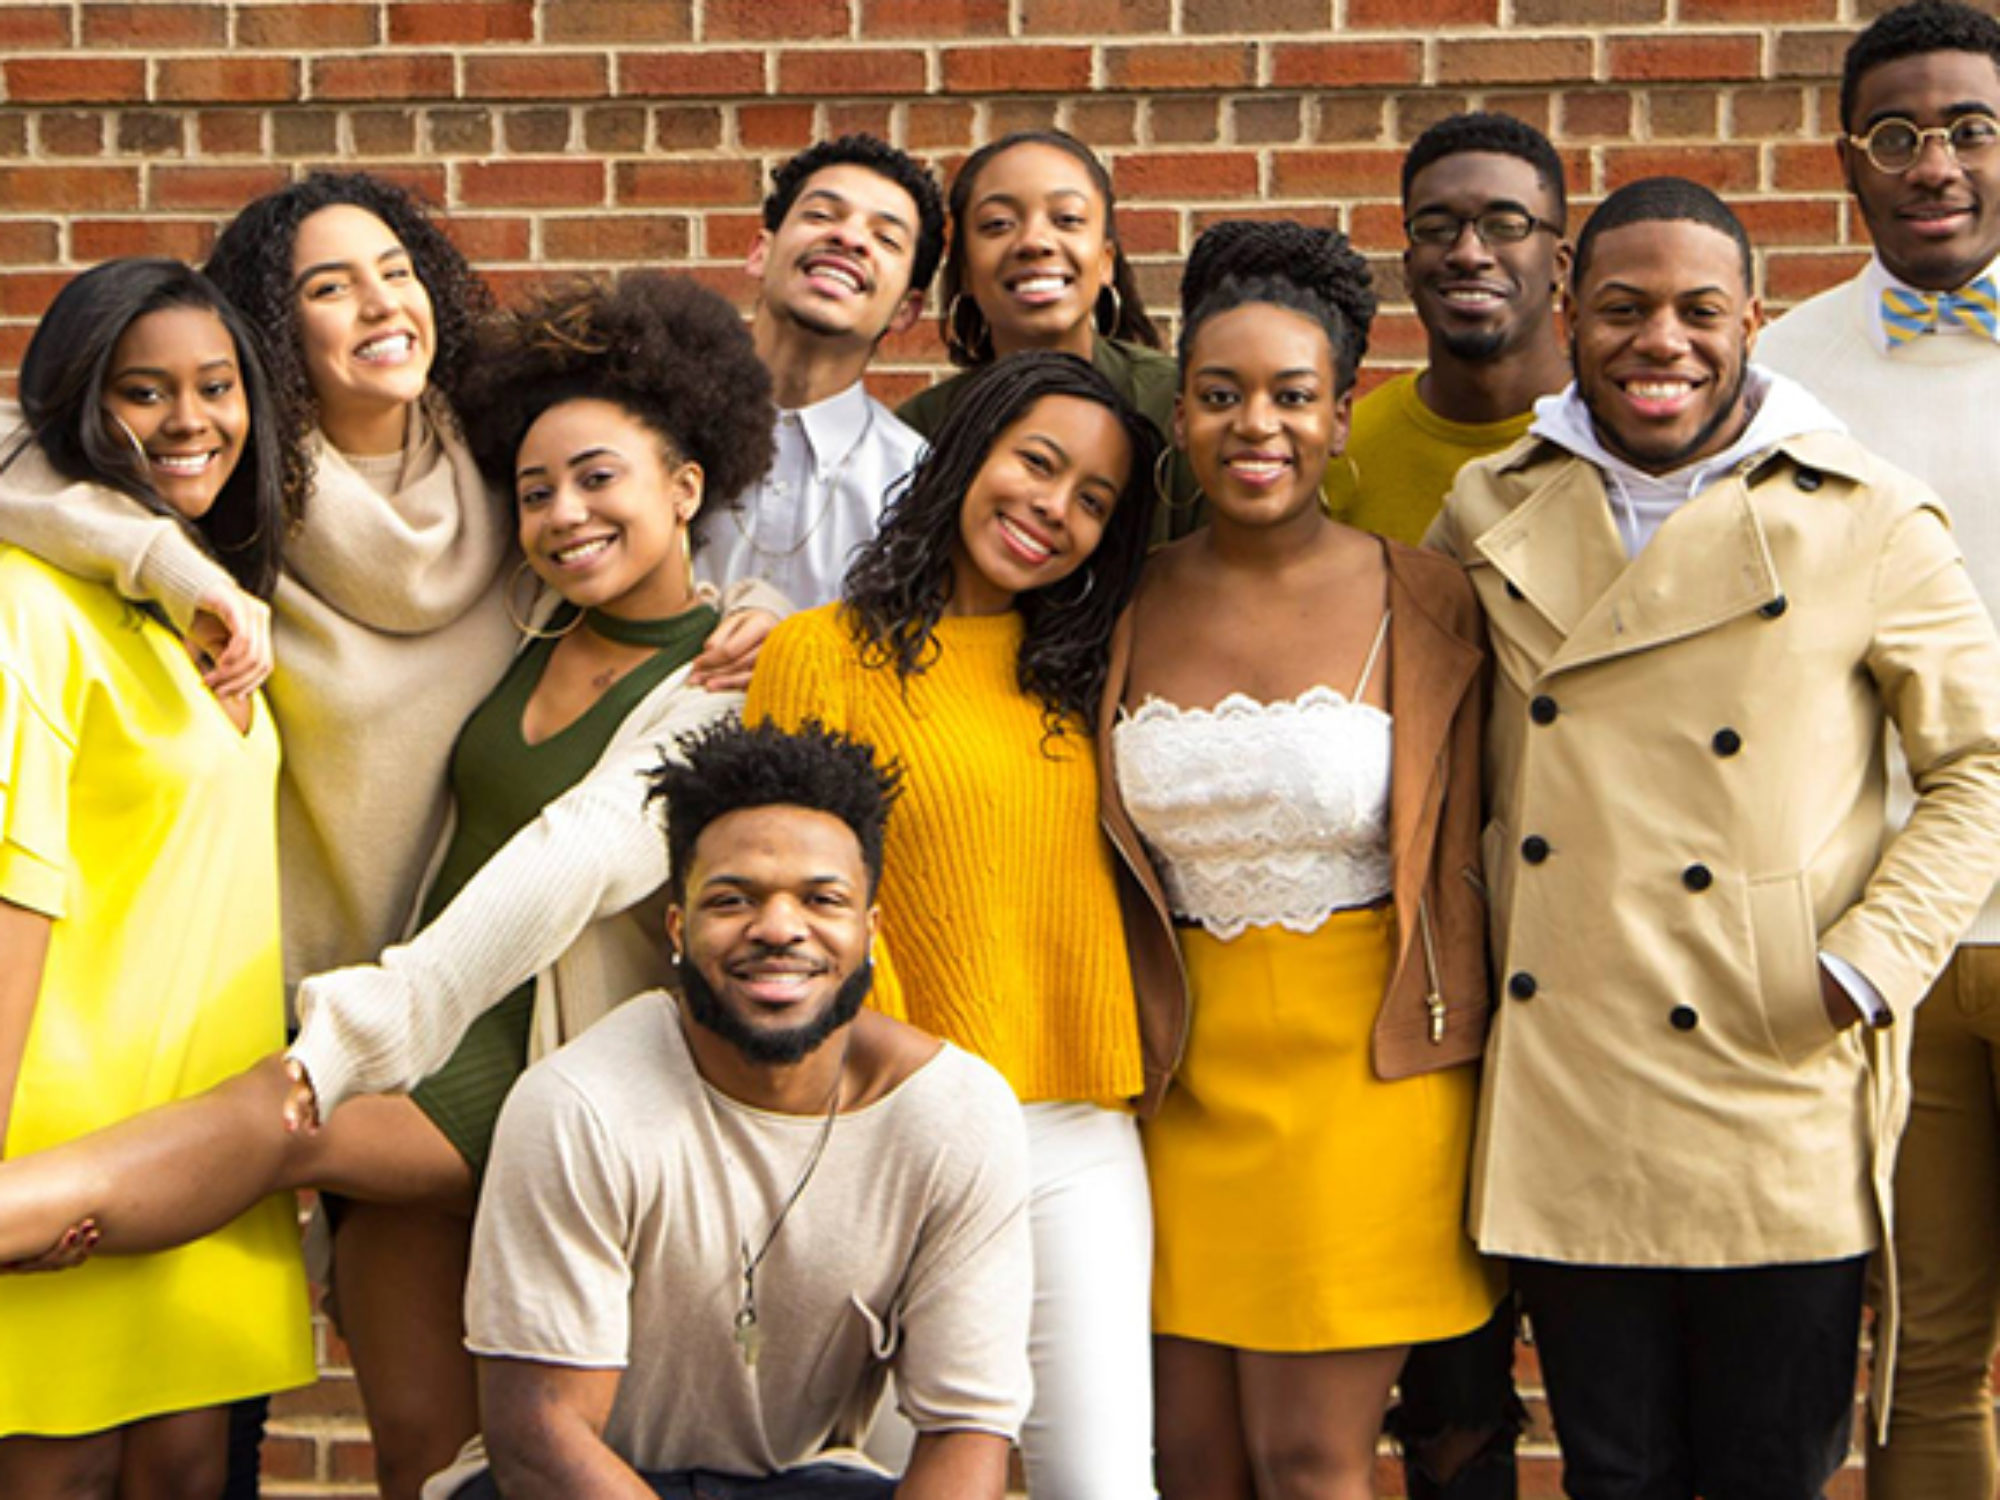 Members of Black Student Alliance smiling in front of a brick wall.